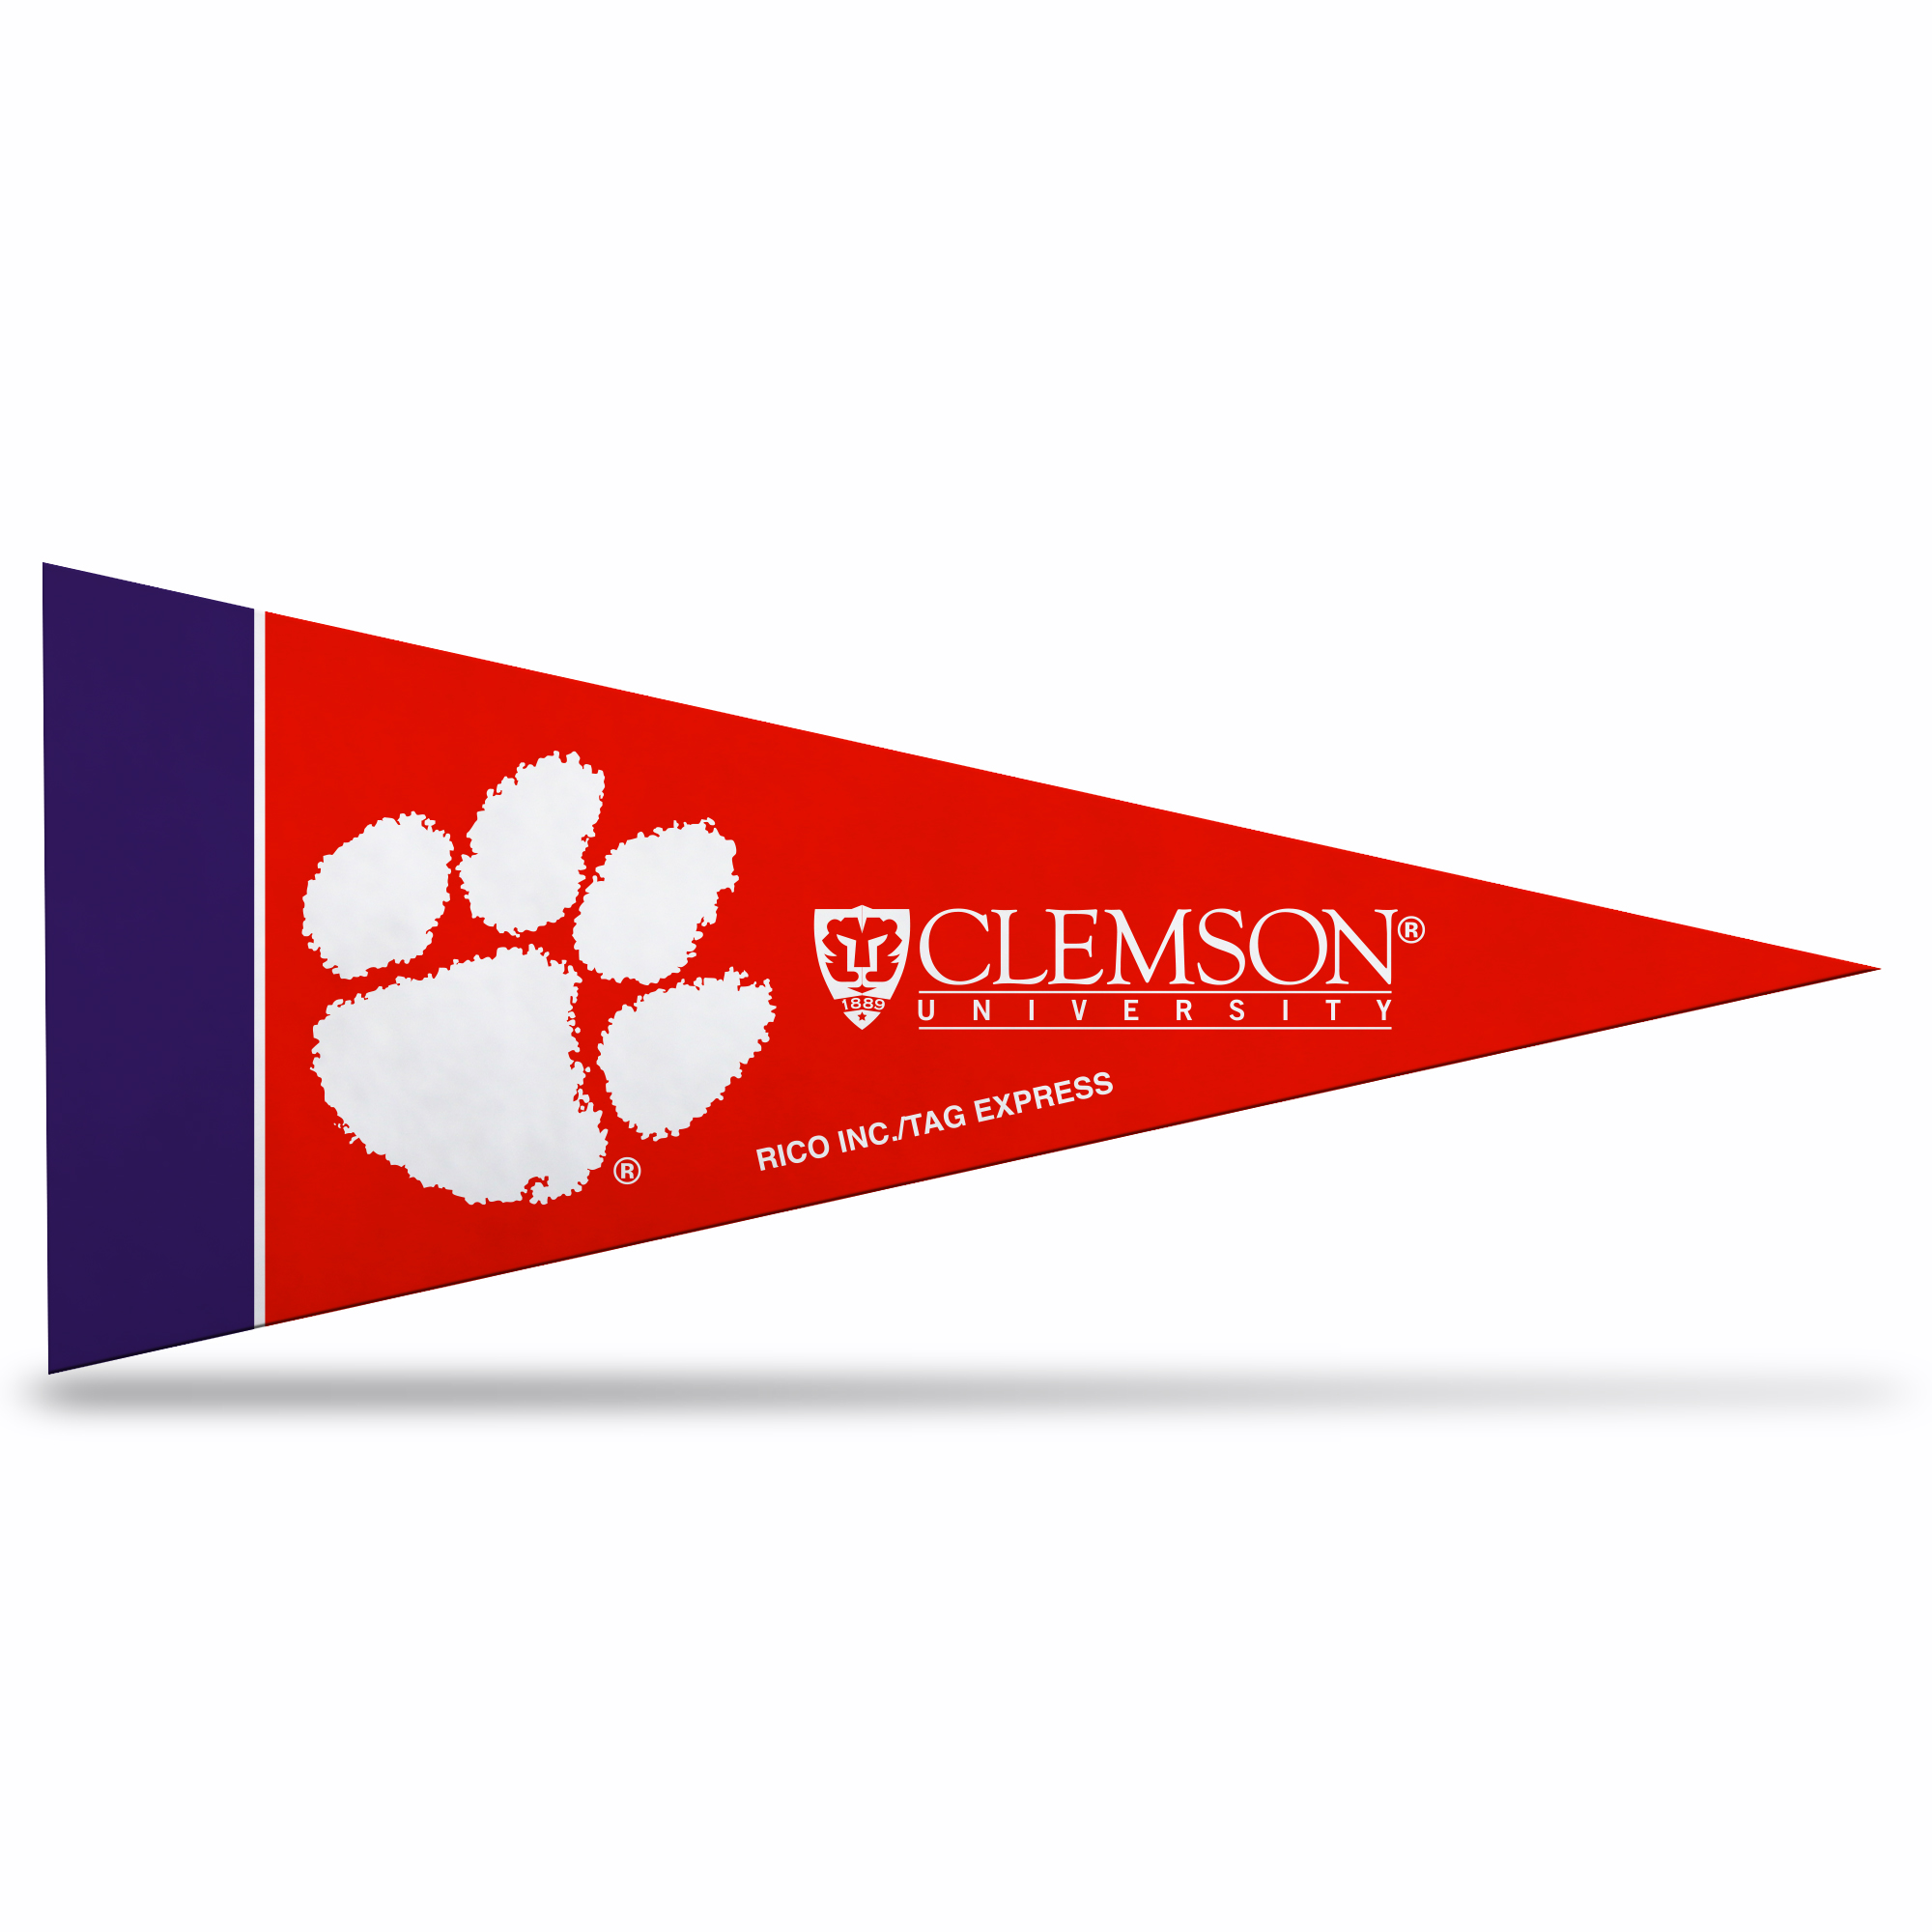 Clemson Tigers Official NCAA 10 inch x 4 inch  8 Piece Mini Pennant Set by Rico